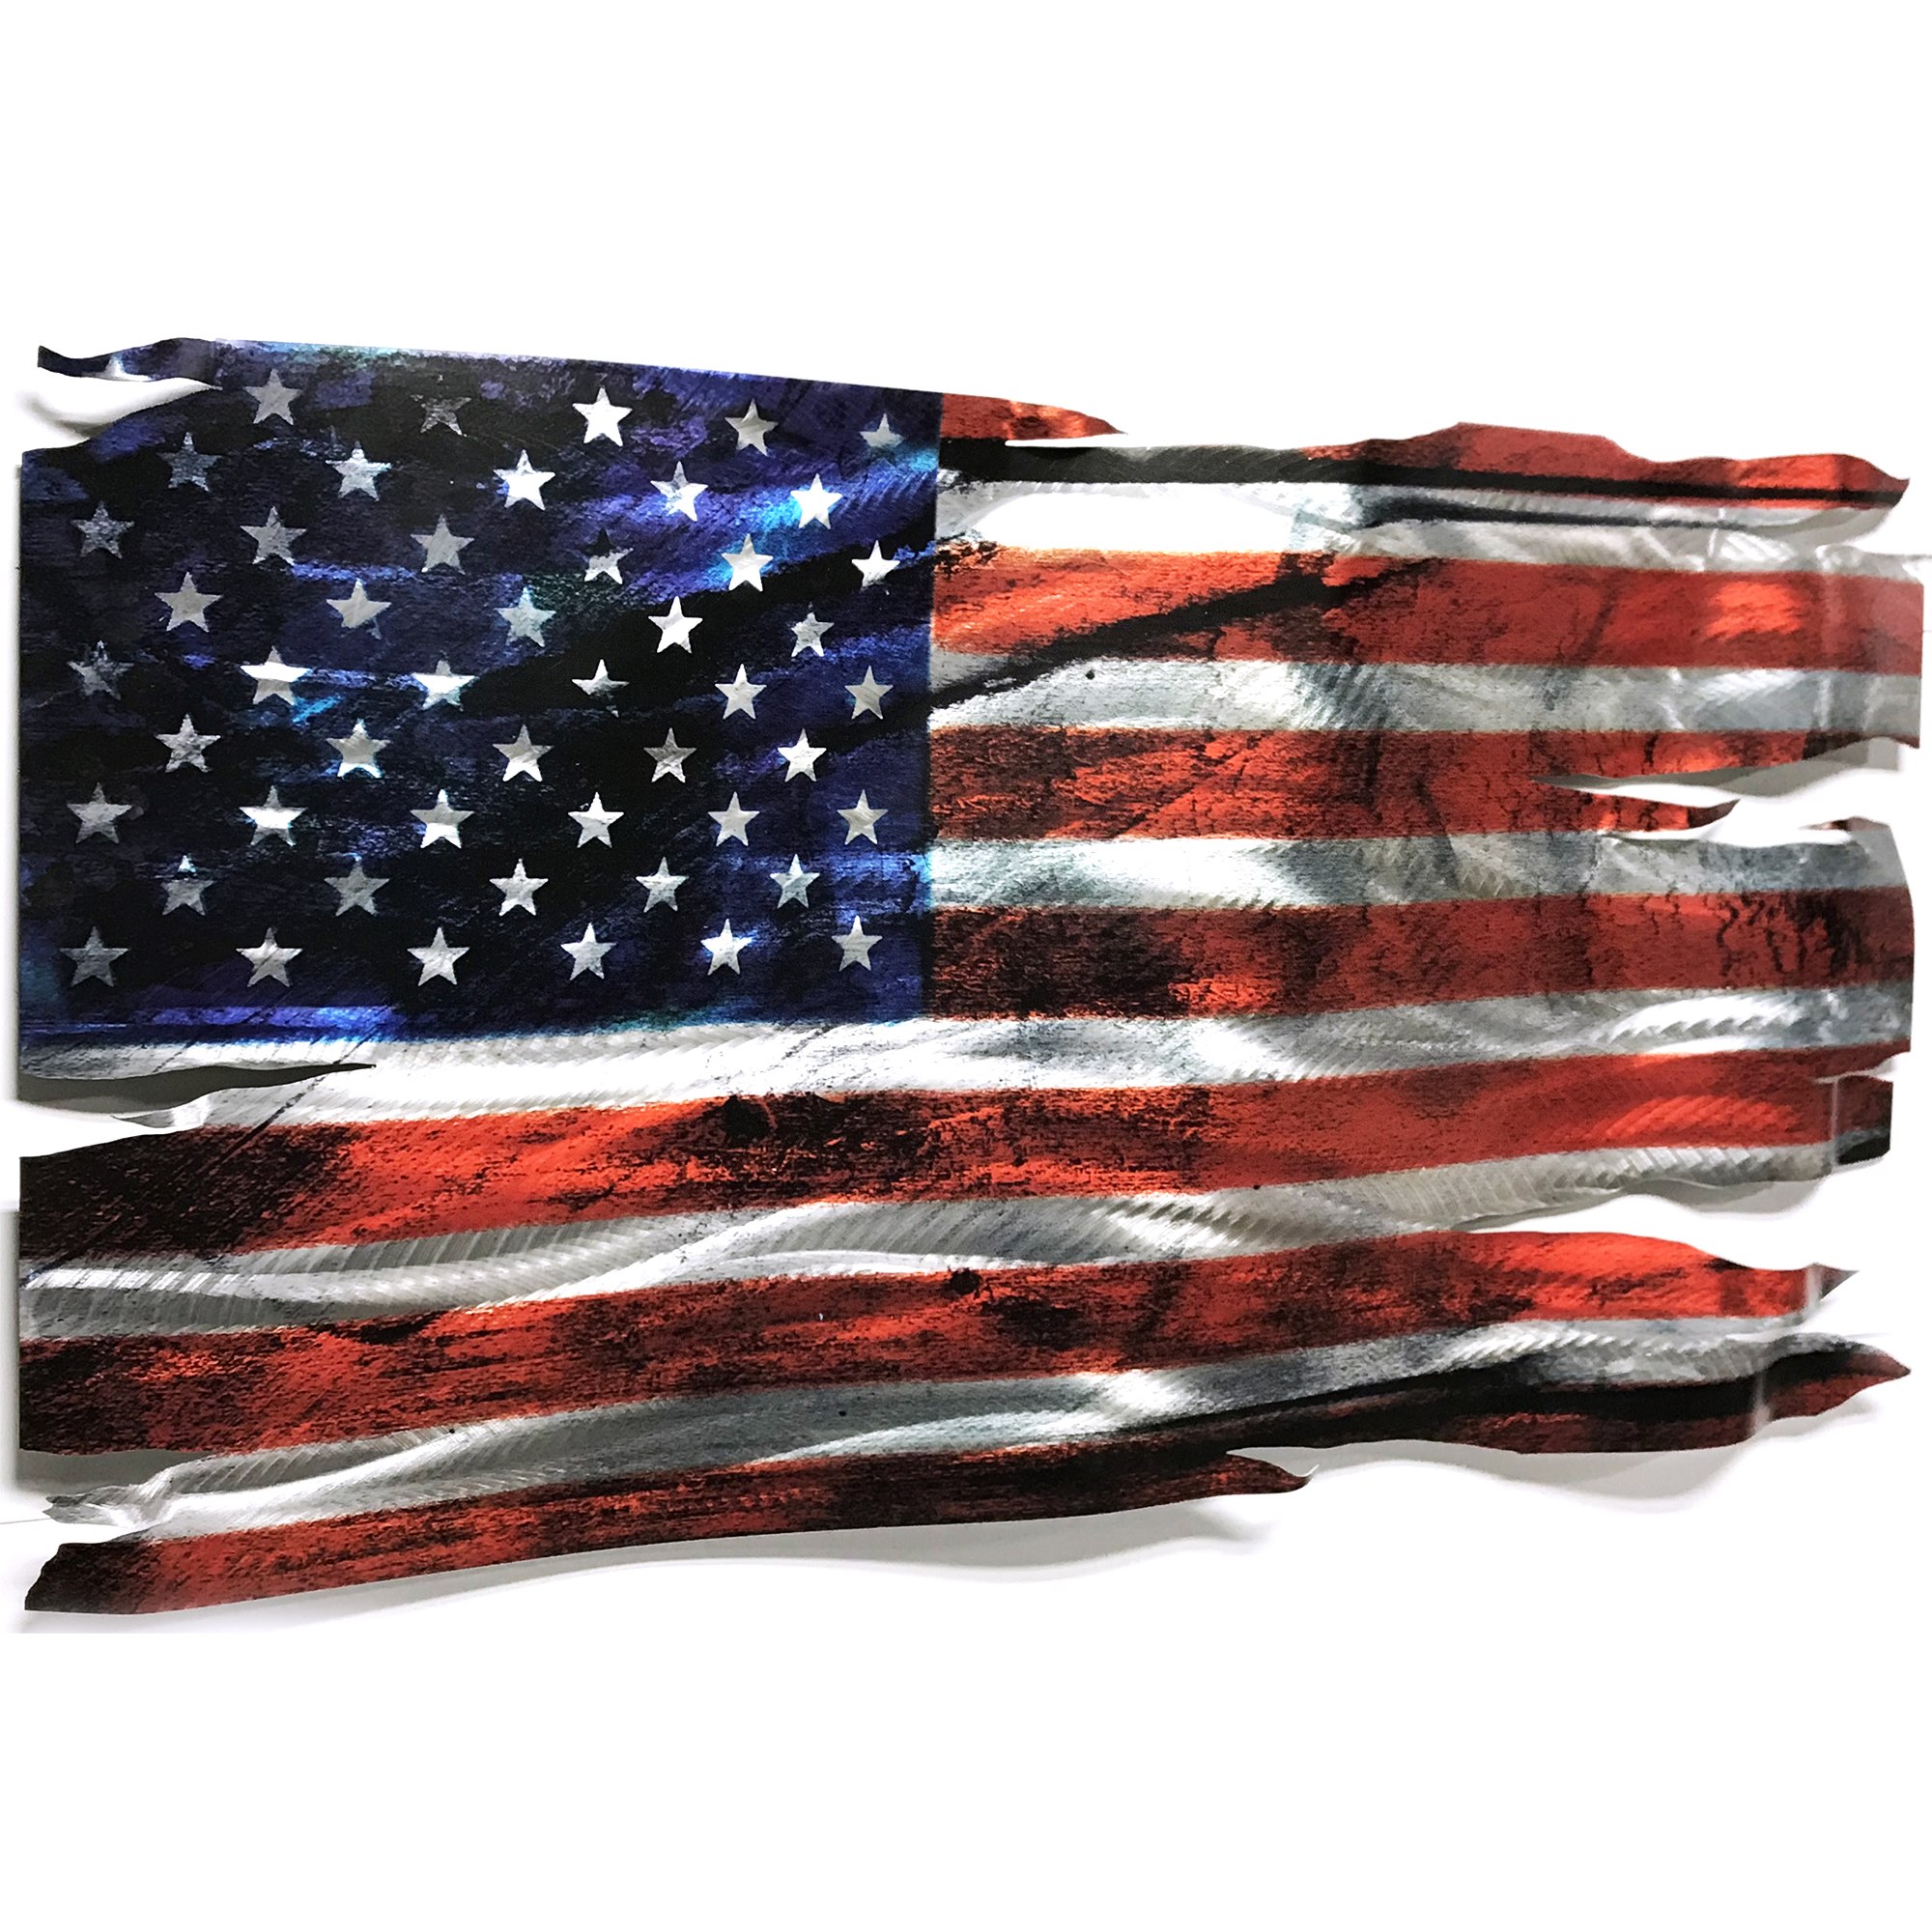 Tattered Glory by Helena Martin | Patriotic Metal Wall Sculpture - HM1776